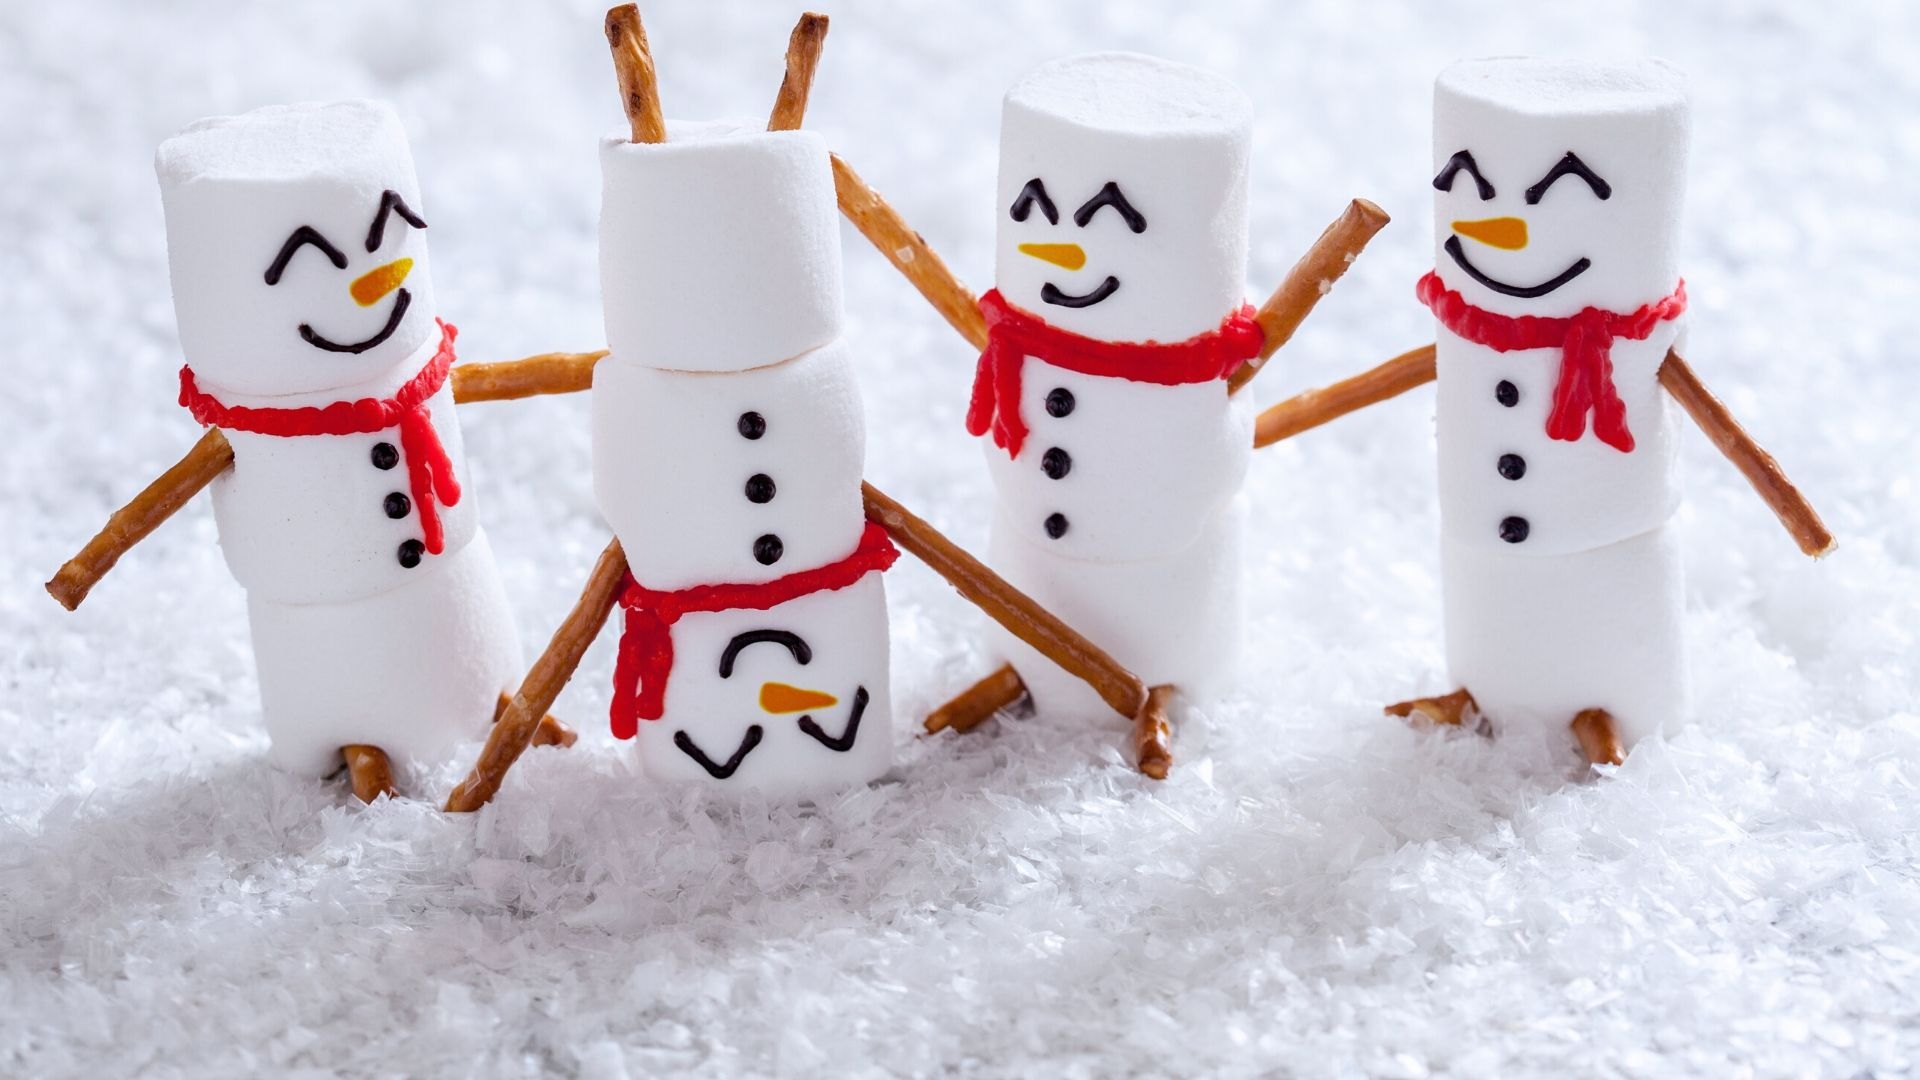 9 Festive Holiday Video Ideas You'll Want to Steal